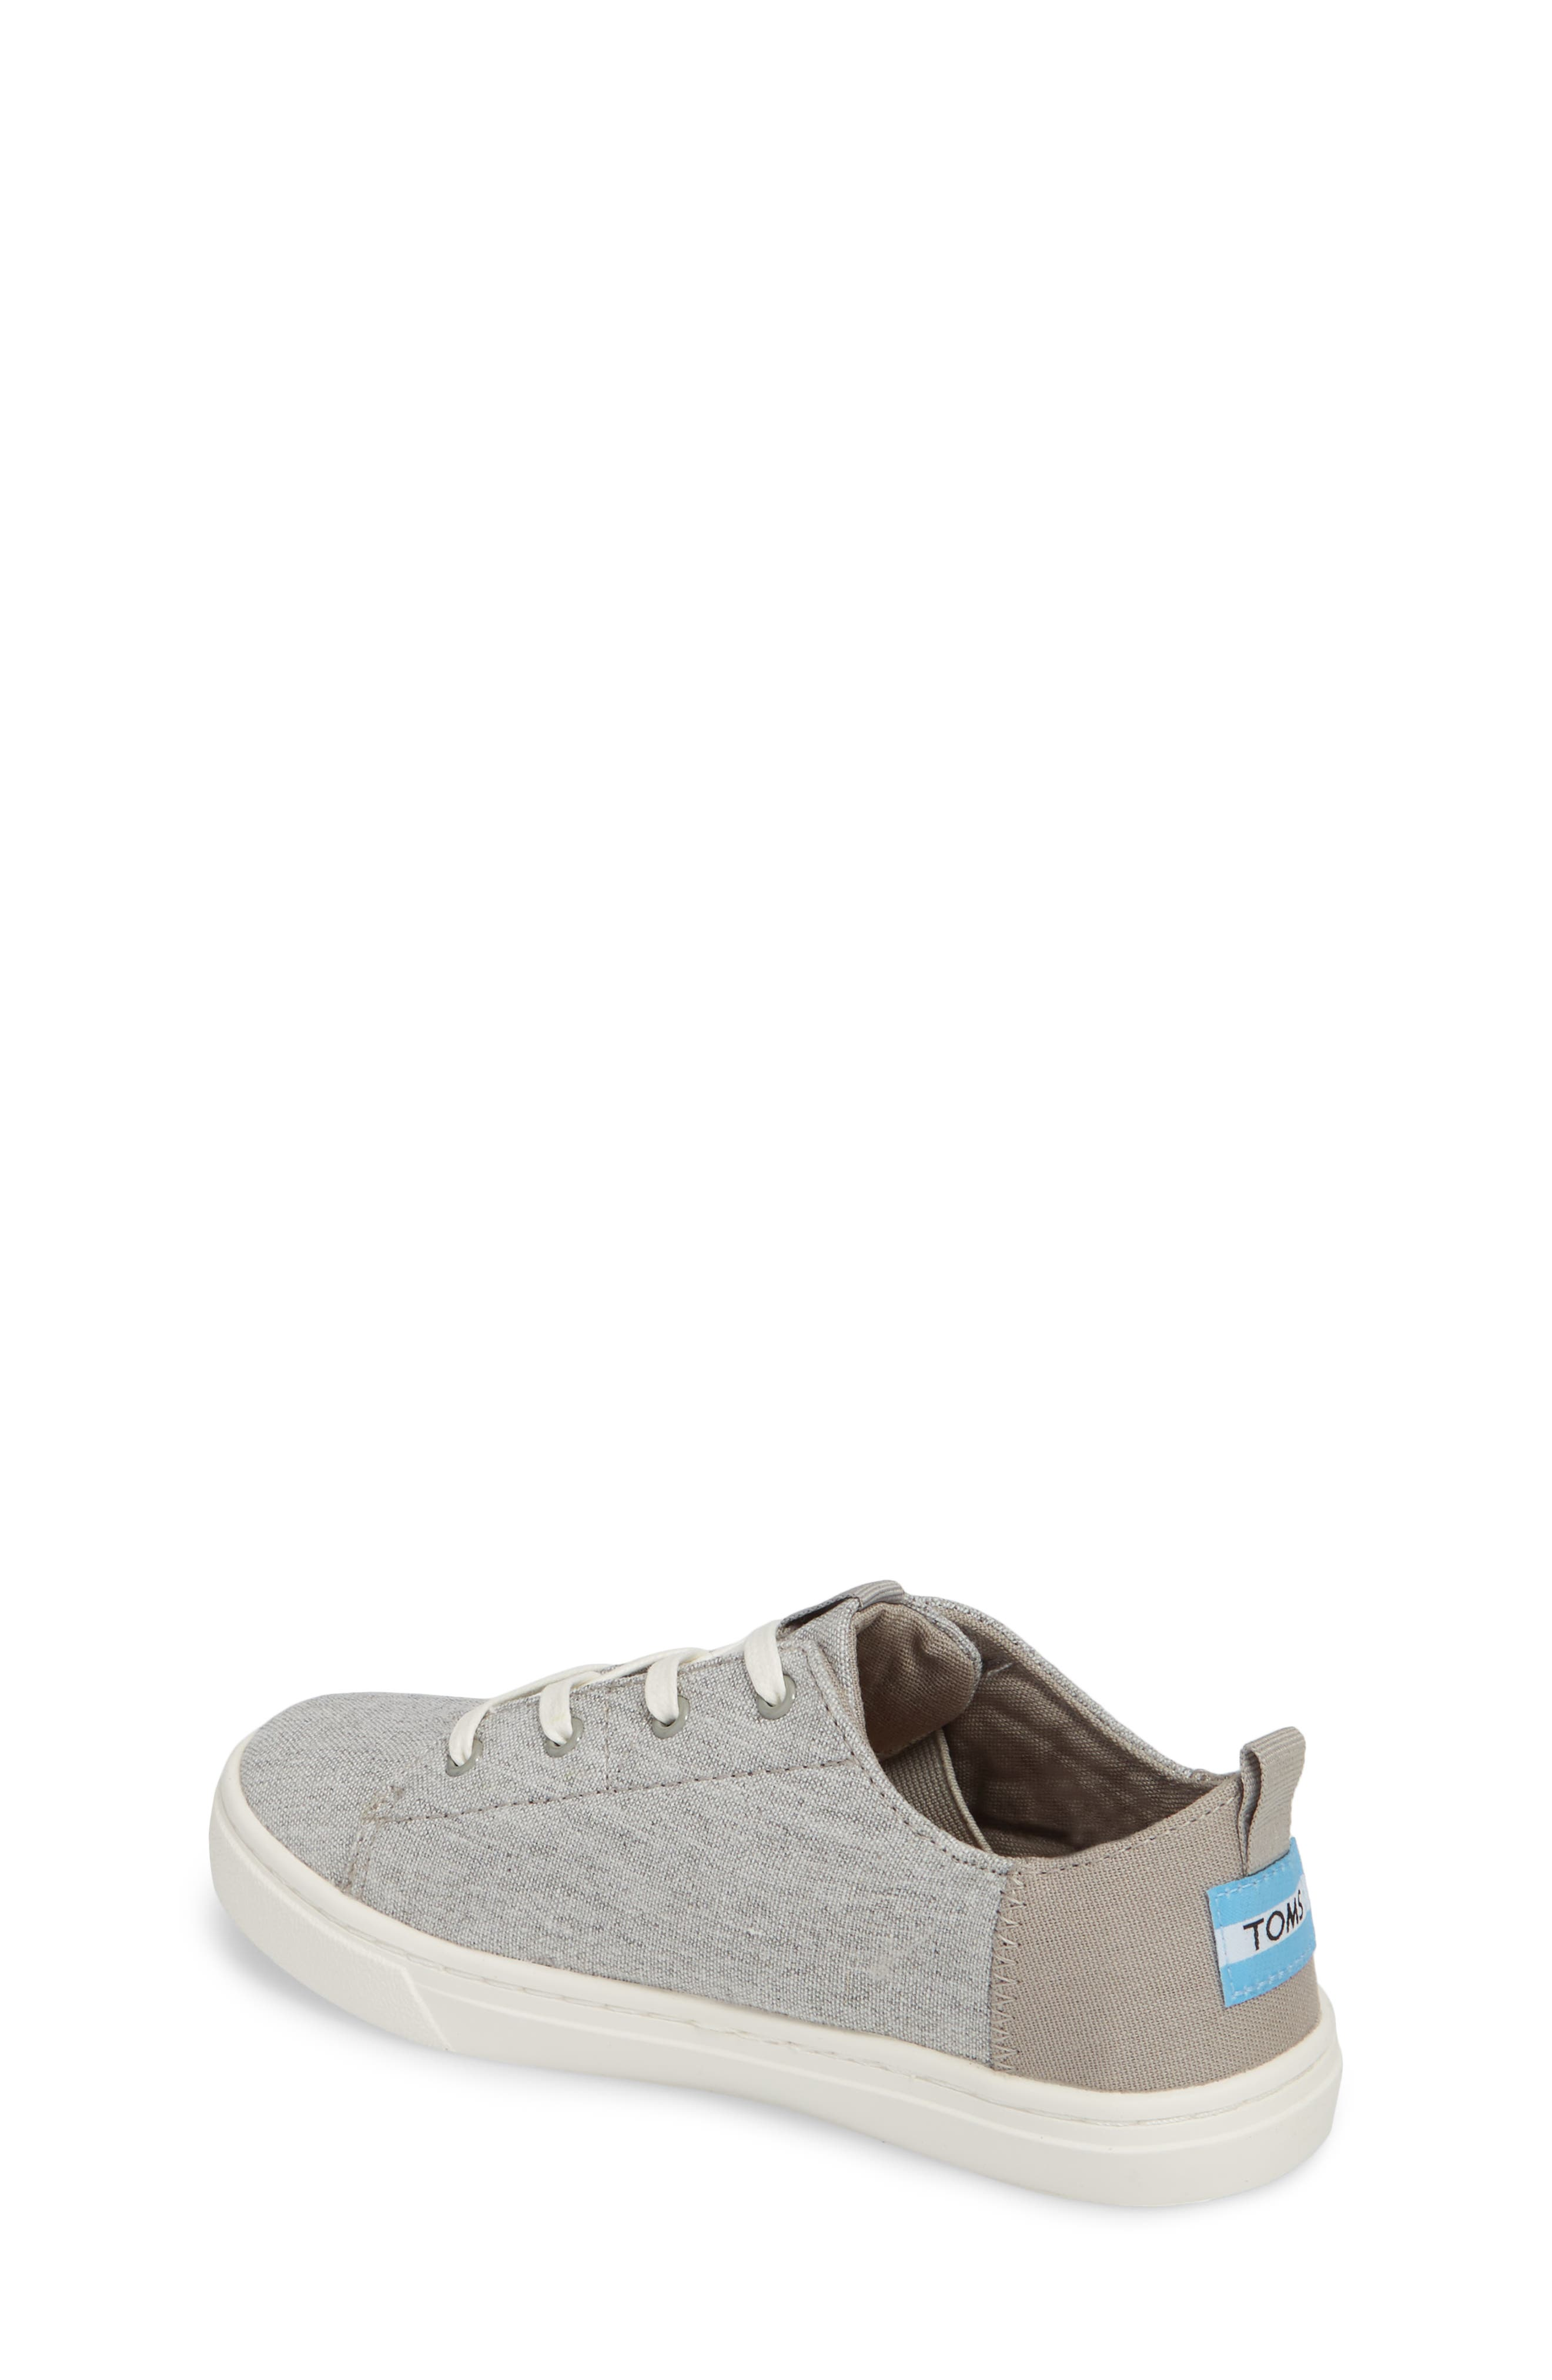 Lenny Sneaker,                             Alternate thumbnail 2, color,                             DRIZZLE GREY SLUB CHAMBRAY